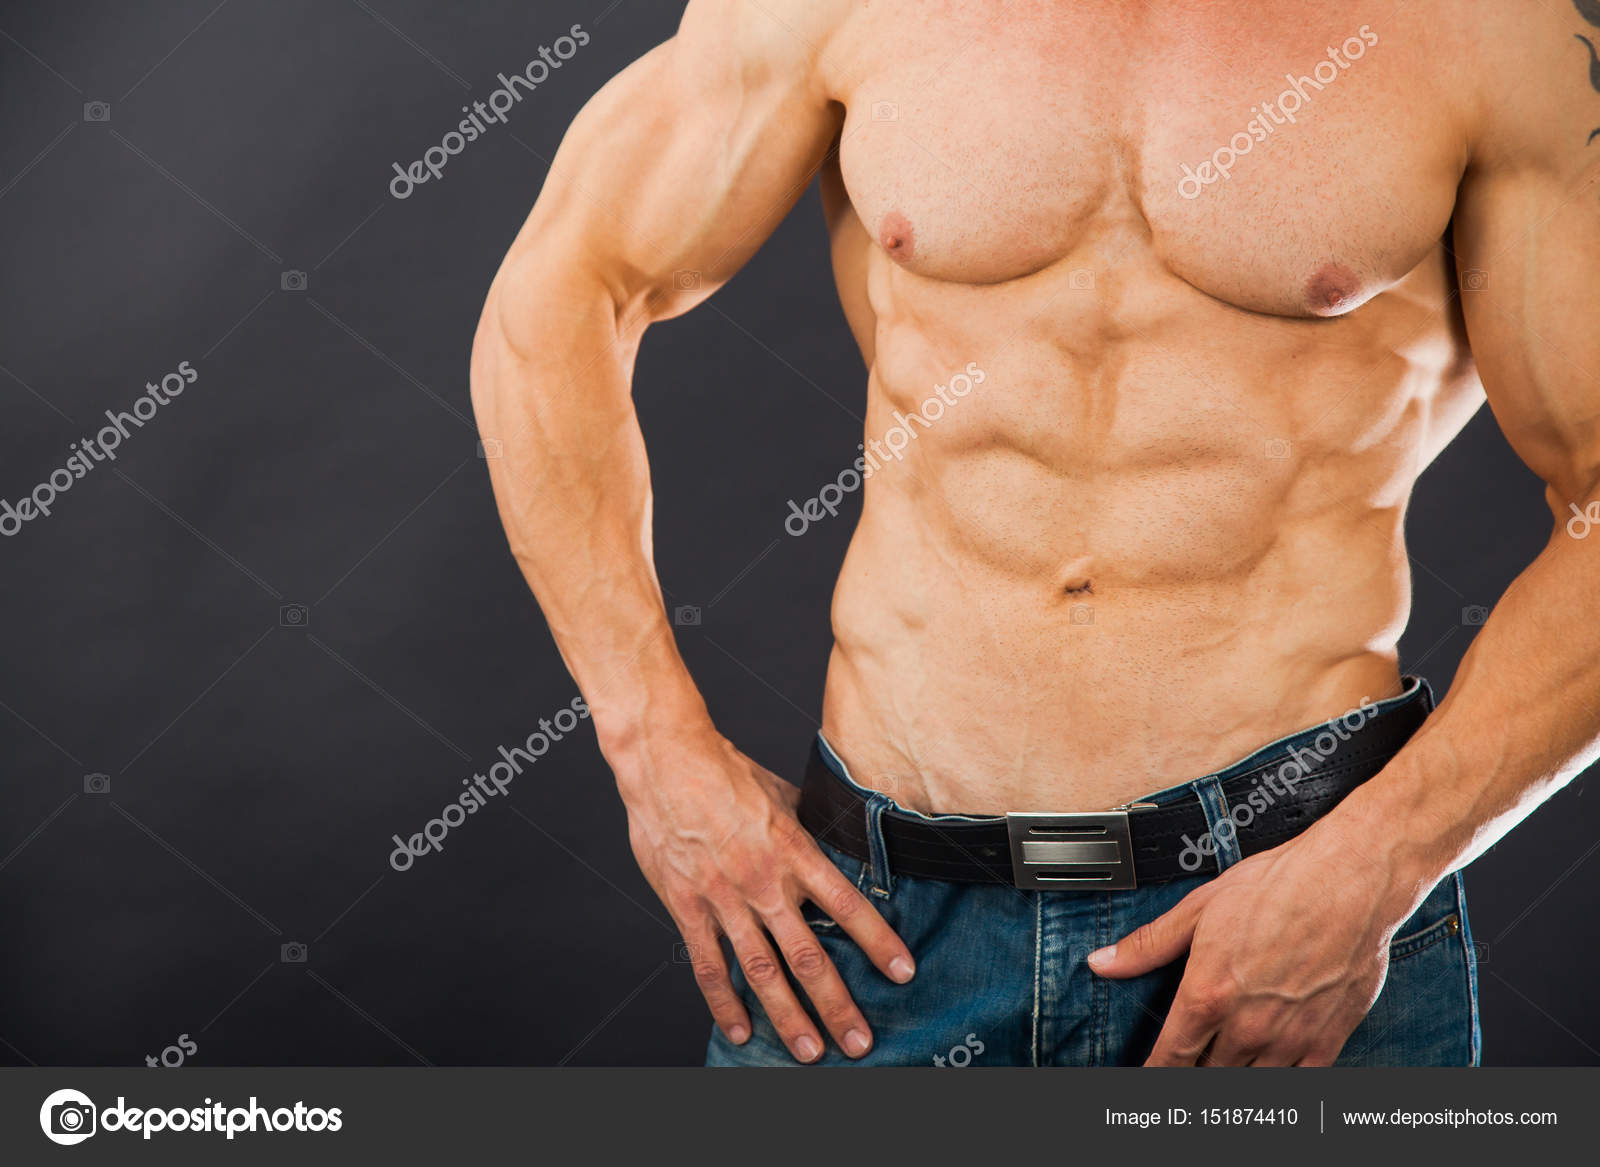 Male Muscular Torso With Six Pack Abs Stock Photo Klyots 151874410